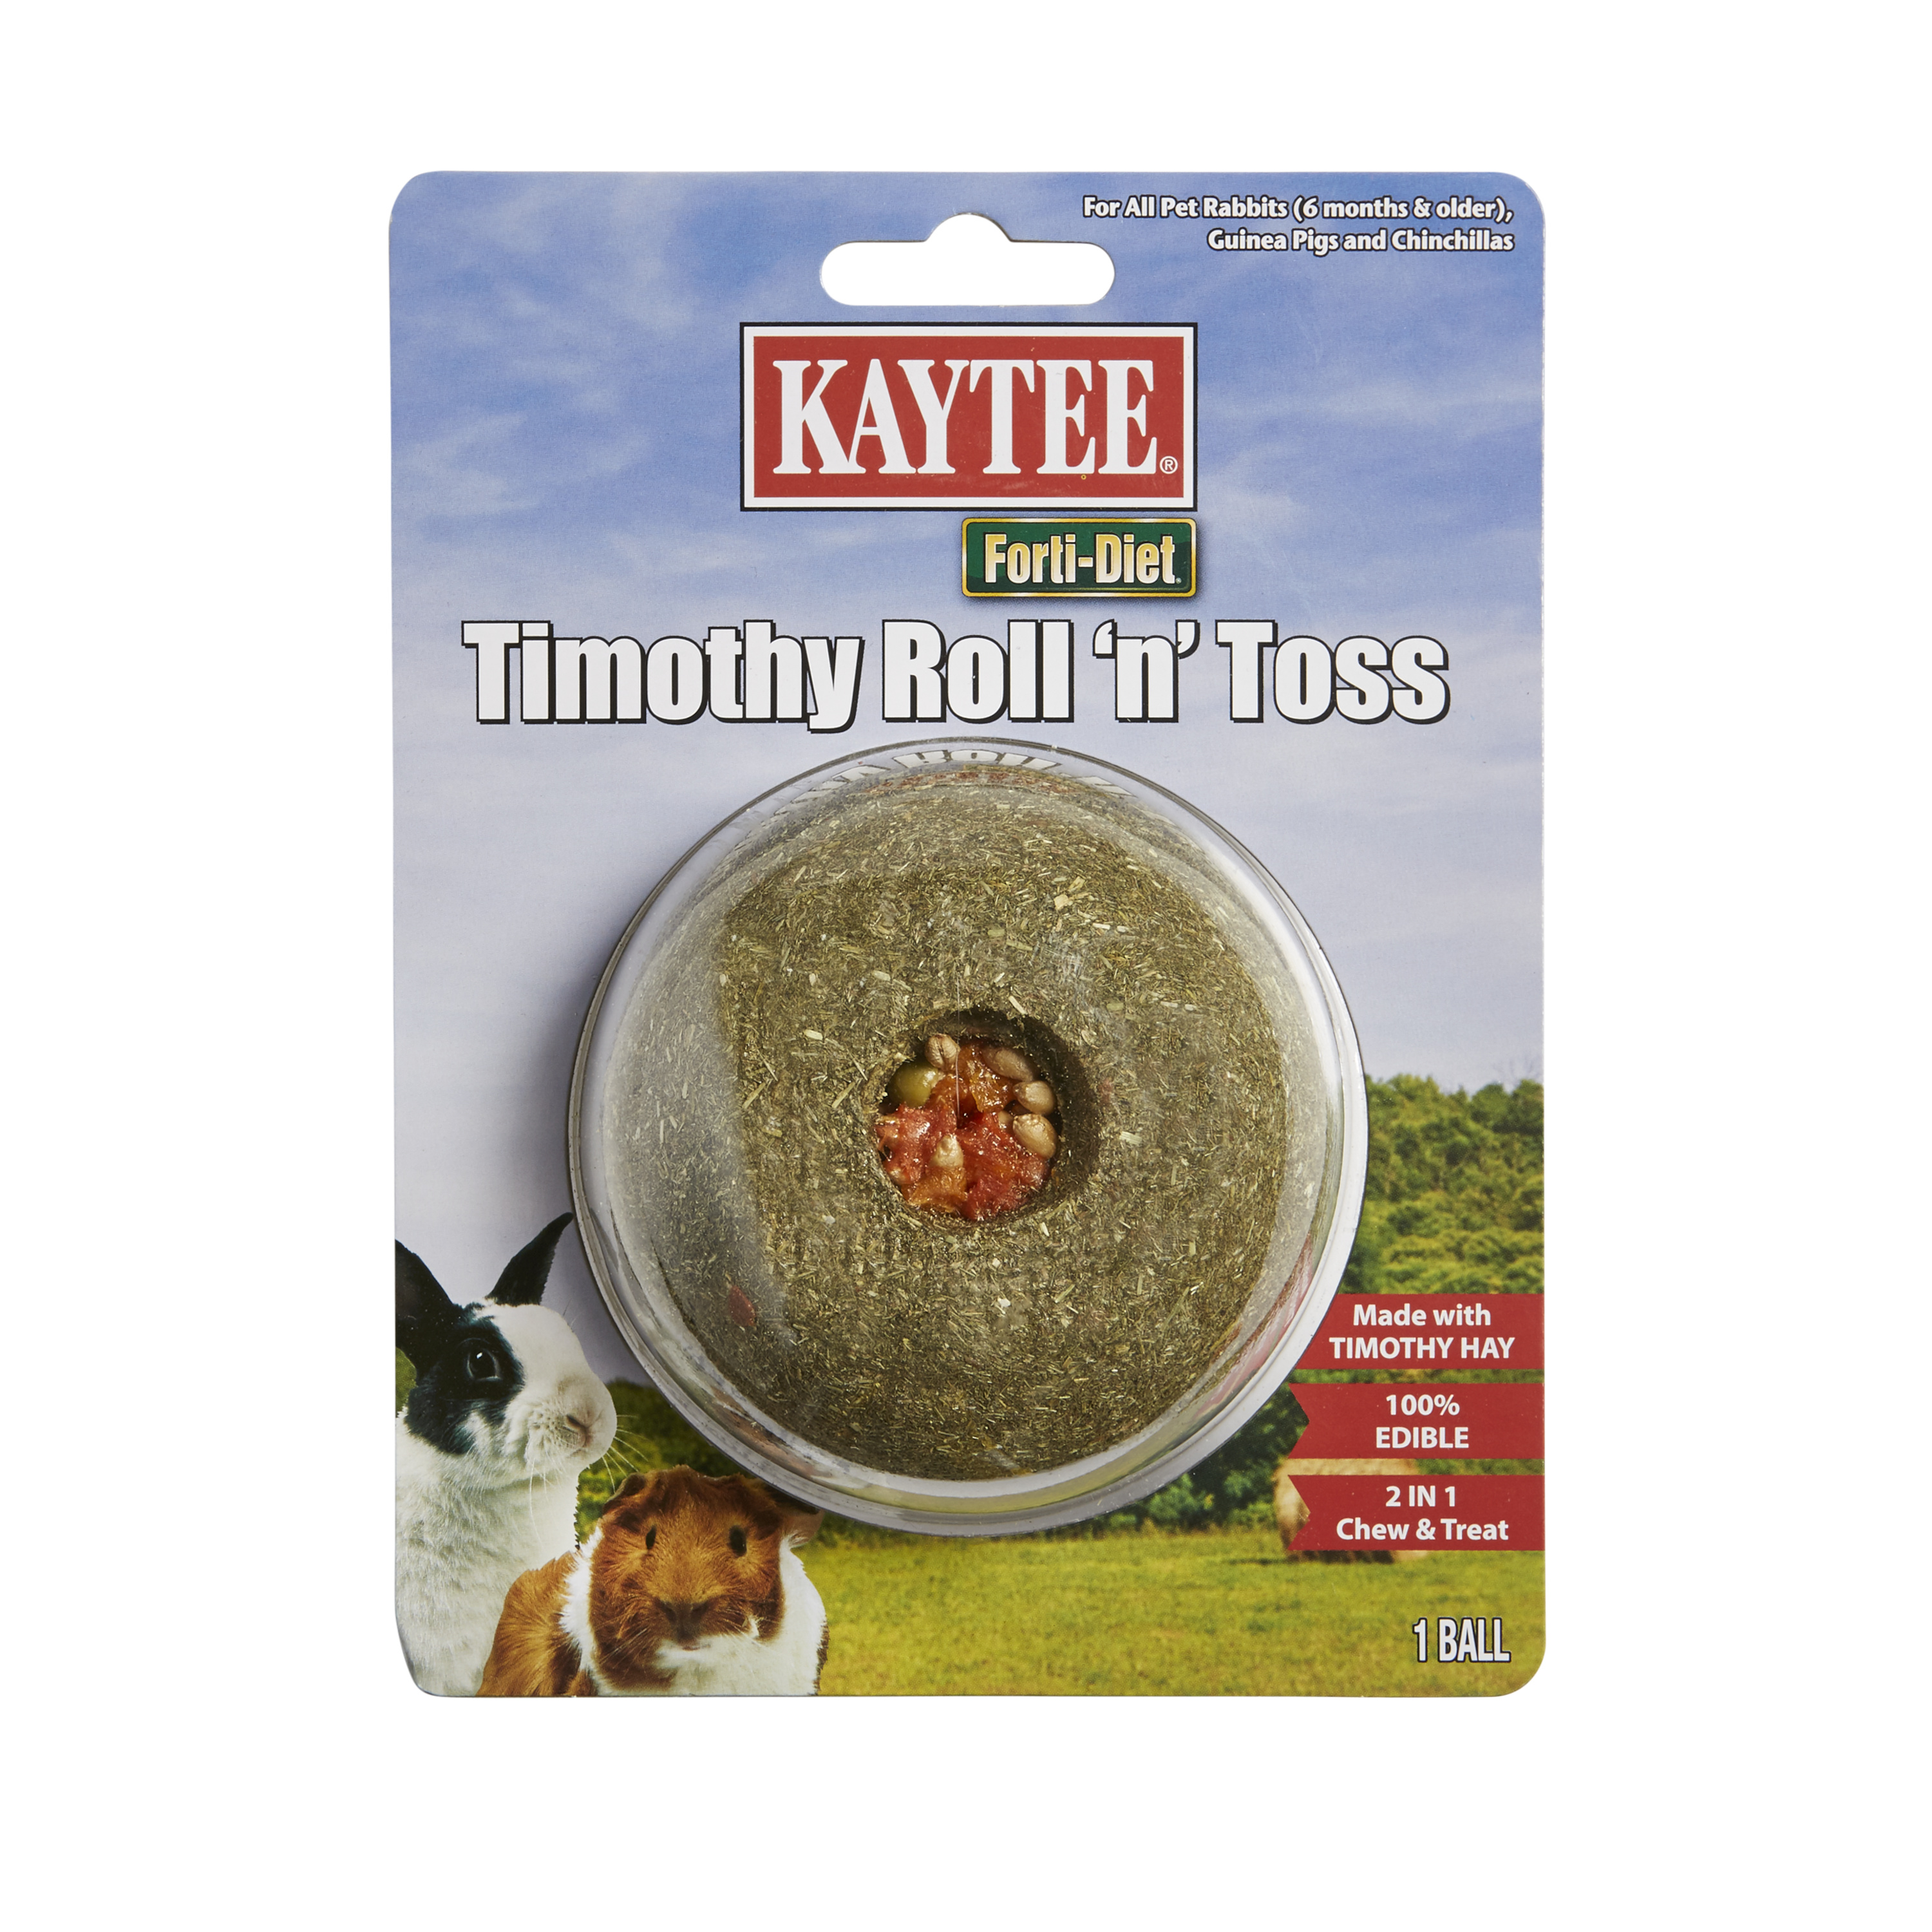 Kaytee Forti-Diet Timothy Roll 'n' Toss, Small Pet Edible Treat